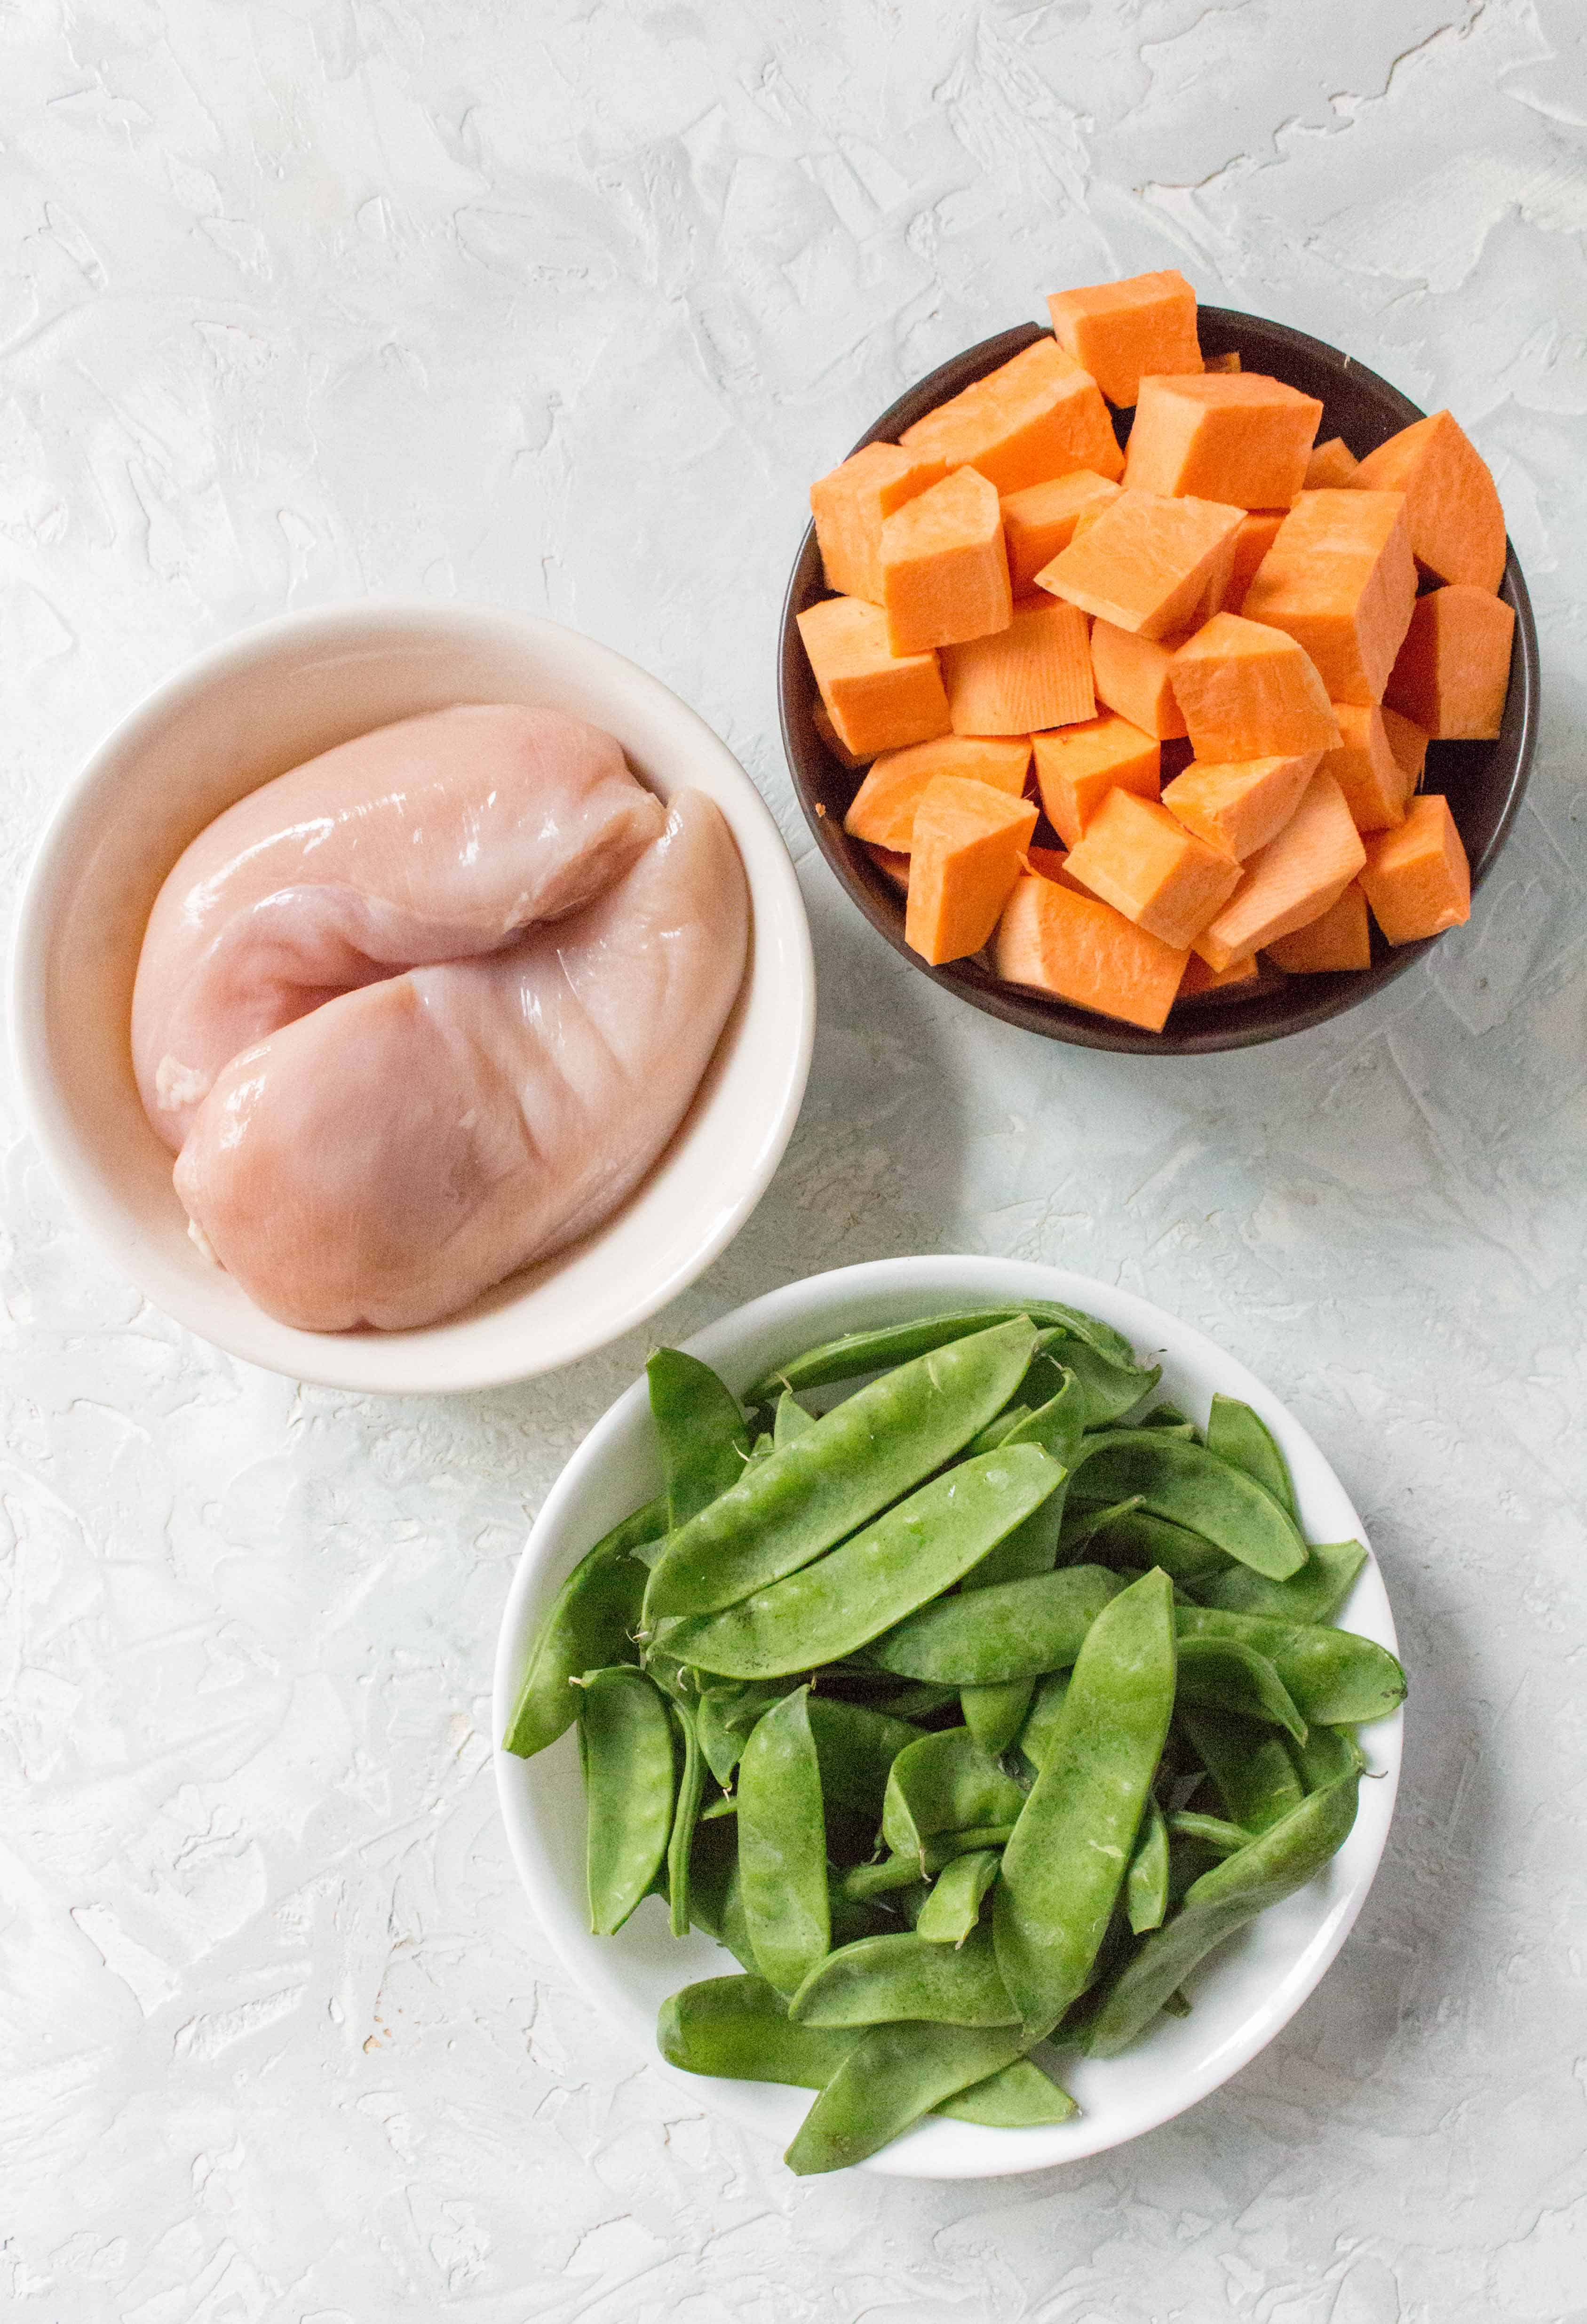 What You'll Need To Make This Easy Chicken and Vegetable Meal Prep